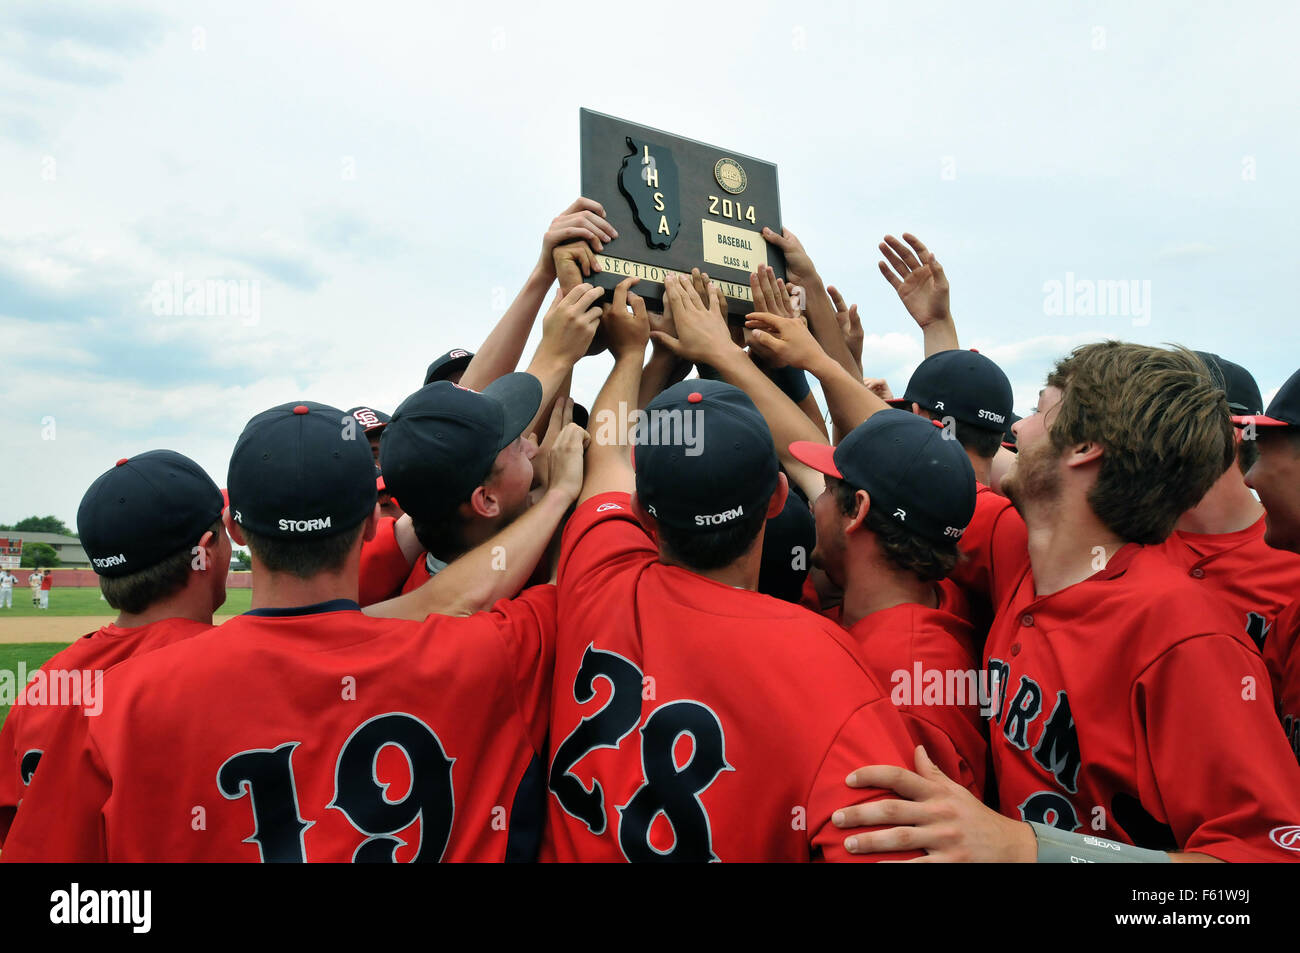 Players all reach to touch a championship title plaque they had just earned in winning a high school sectional playoff - Stock Image